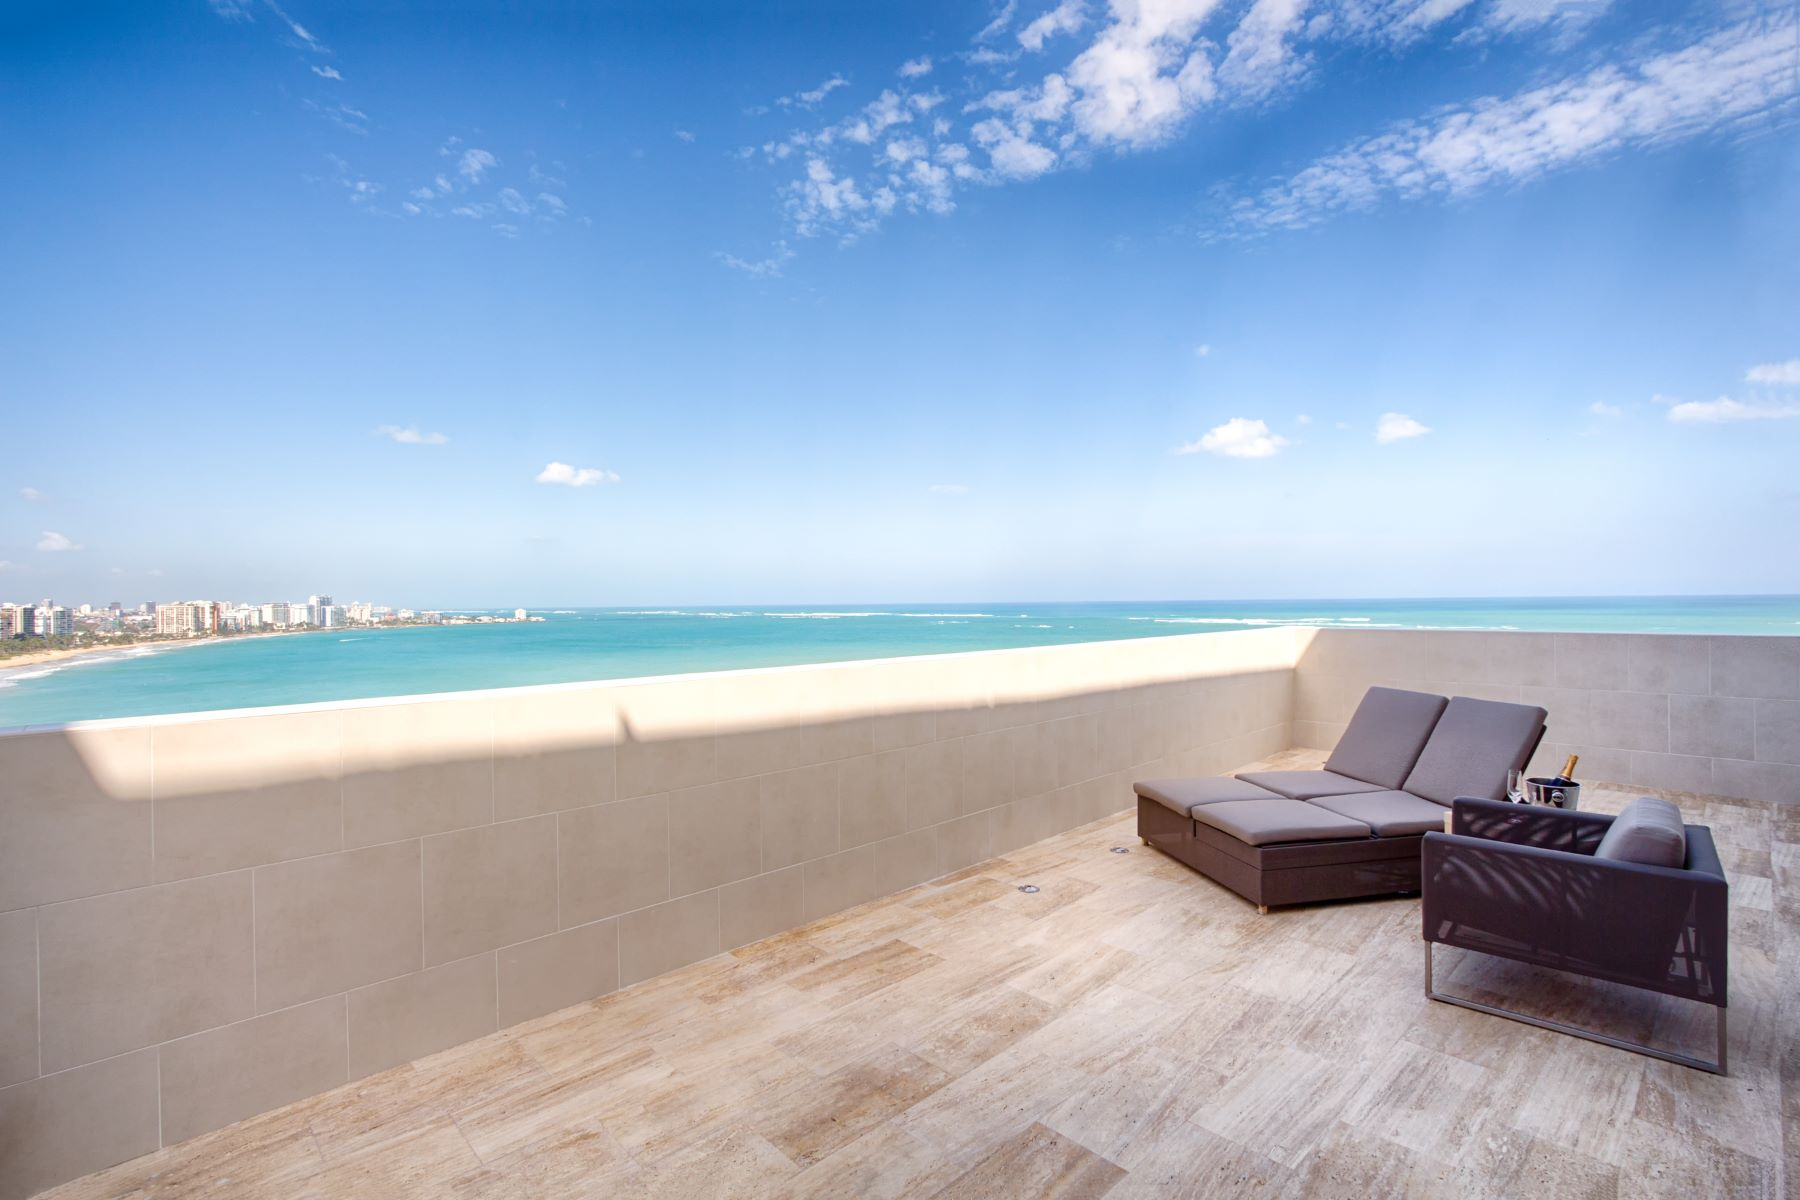 дуплекс для того Продажа на The Ultimate Beach Penthouse 6165 Isla Verde Ave. PH Carolina, Puerto Rico 00979 Пуэрто-Рико